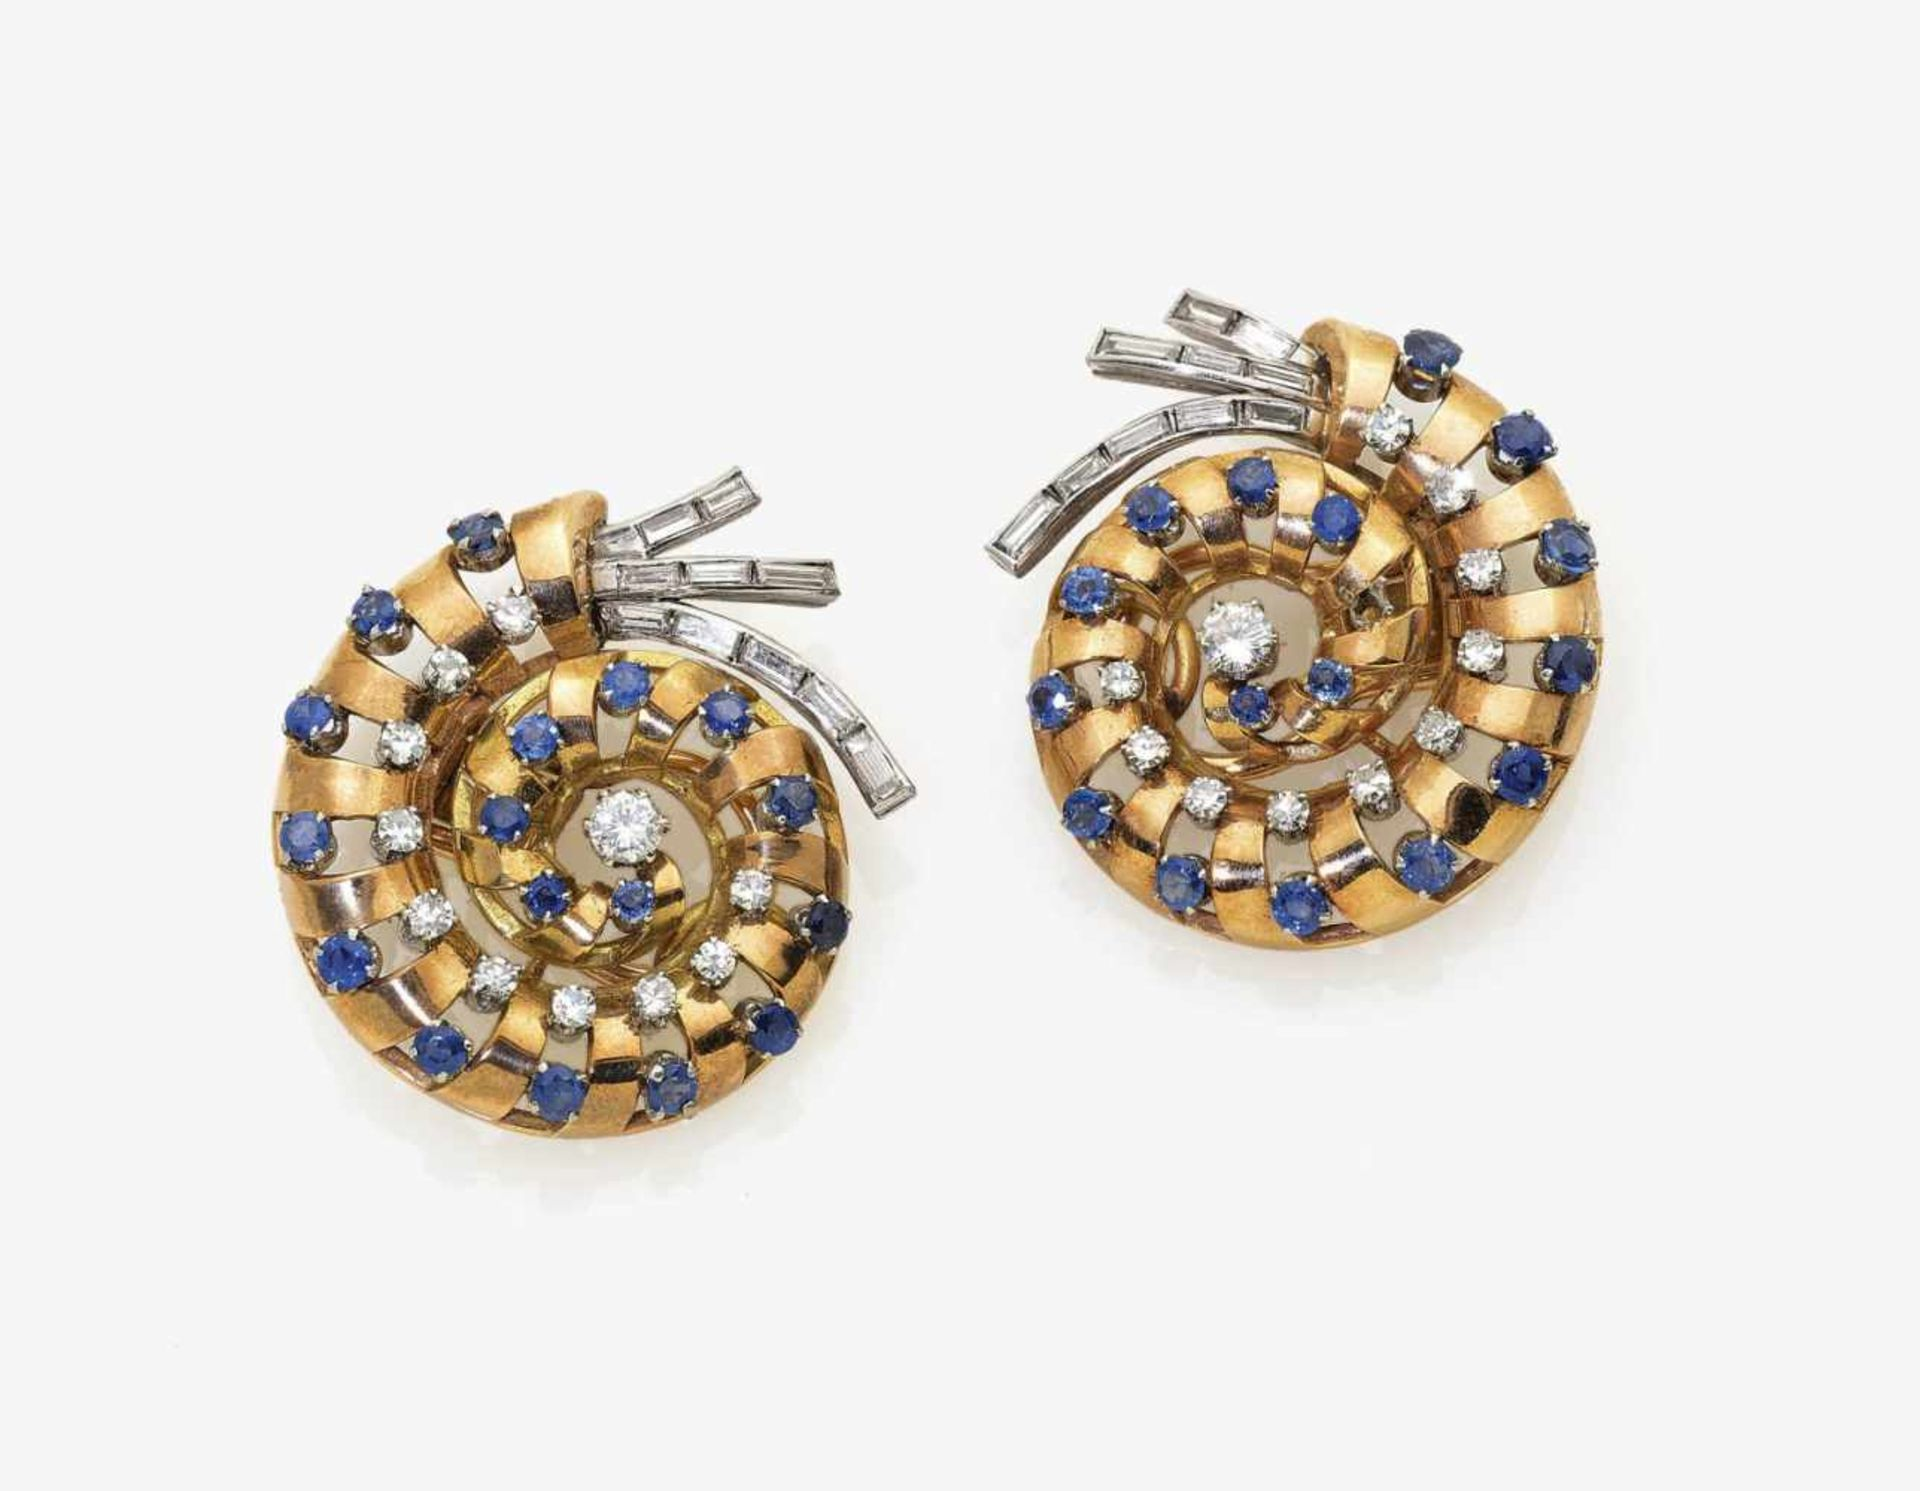 Los 1025 - A Pair of Sapphire and Diamond Ear Clips